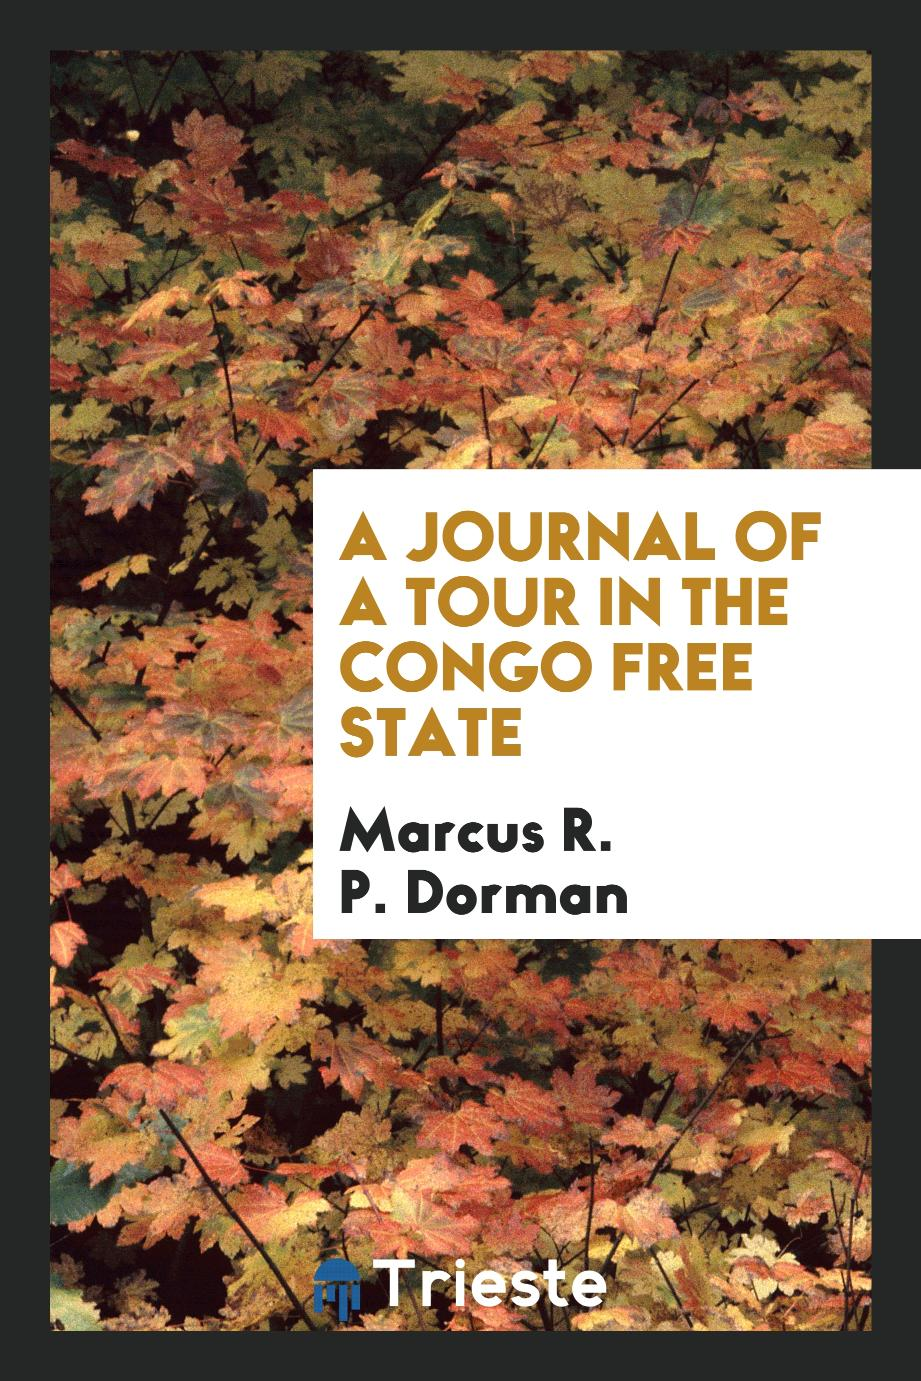 A journal of a tour in the Congo Free State